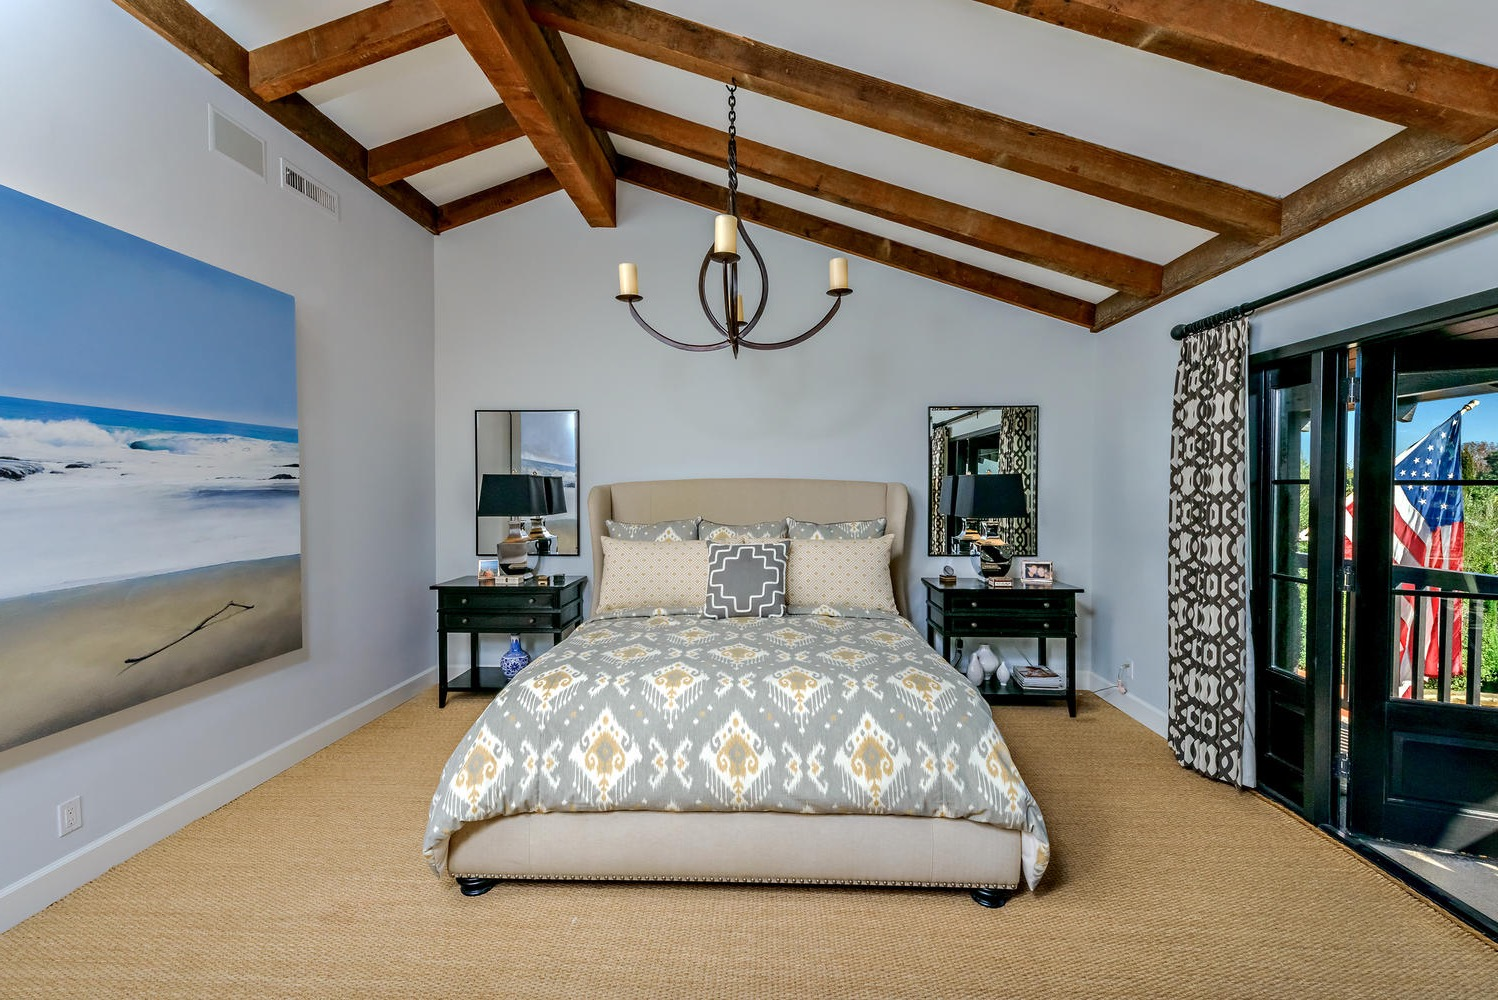 Tropical Master Bedroom With Incline Ceiling And Exposed Beams (Image 28 of 32)